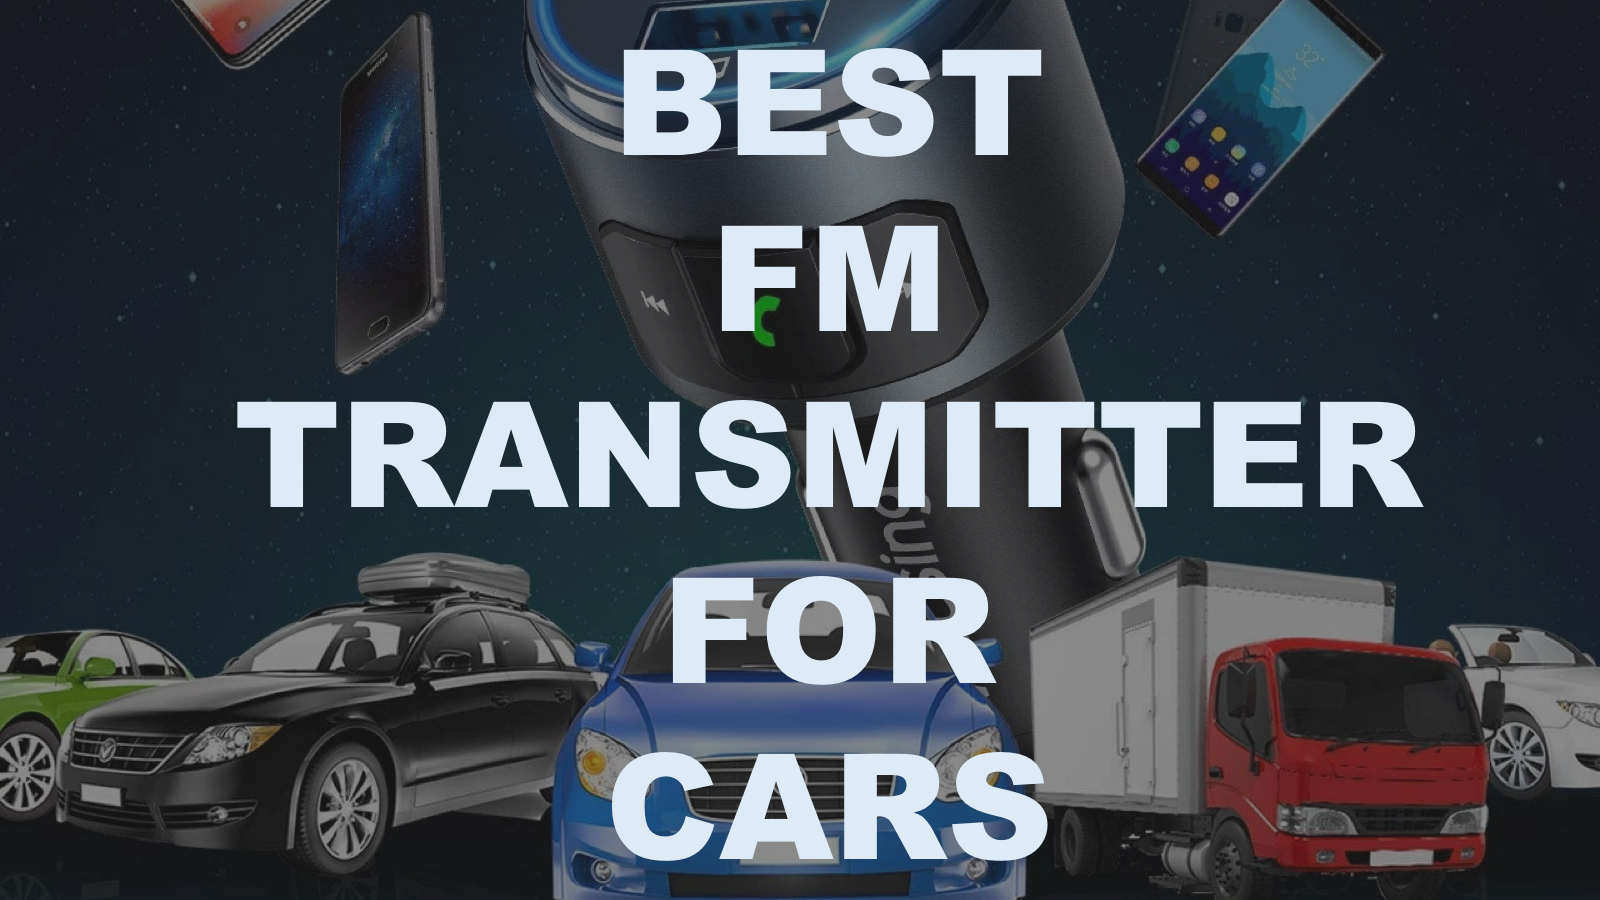 FM transmitter for car